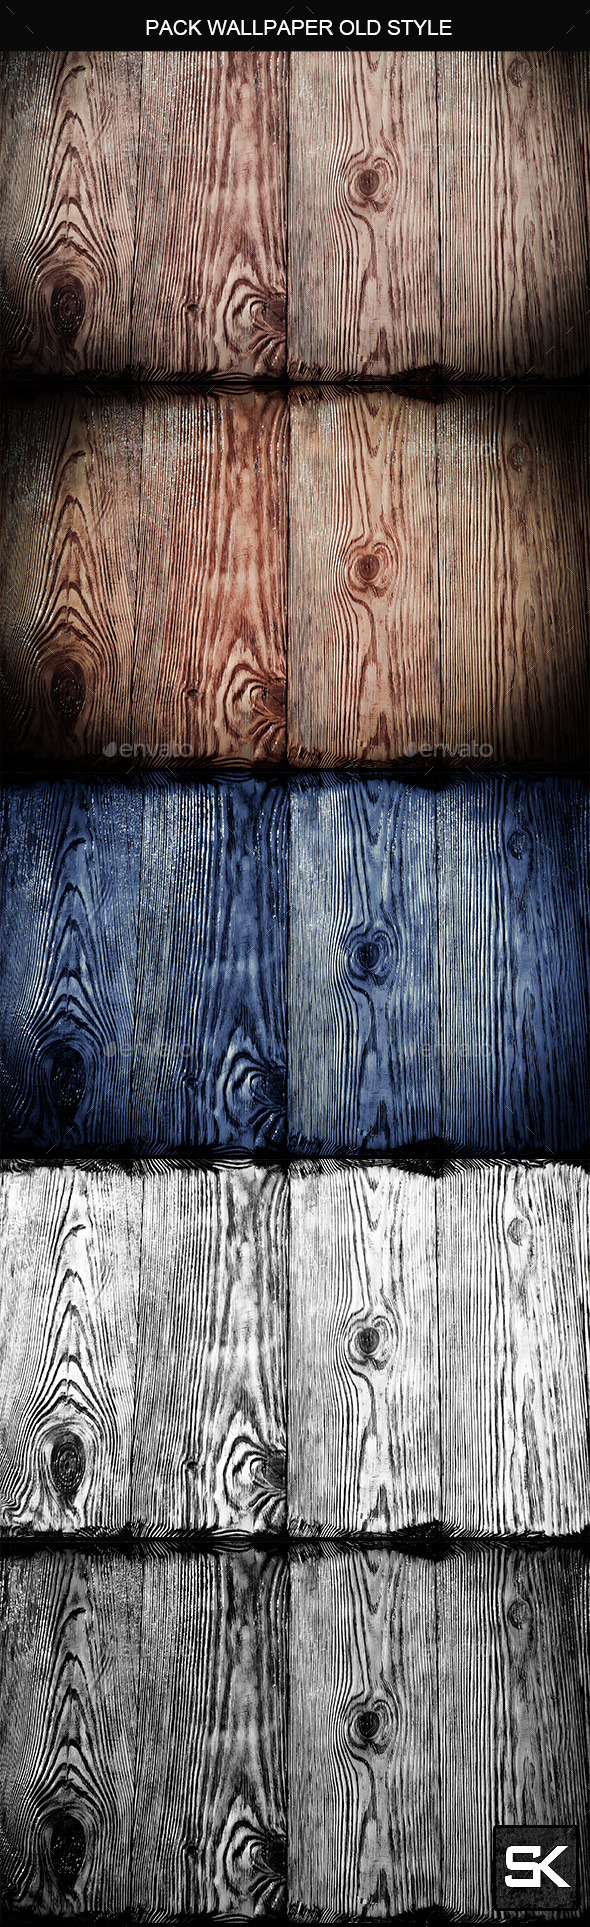 Wood Backgrounds 2 - Nature Backgrounds